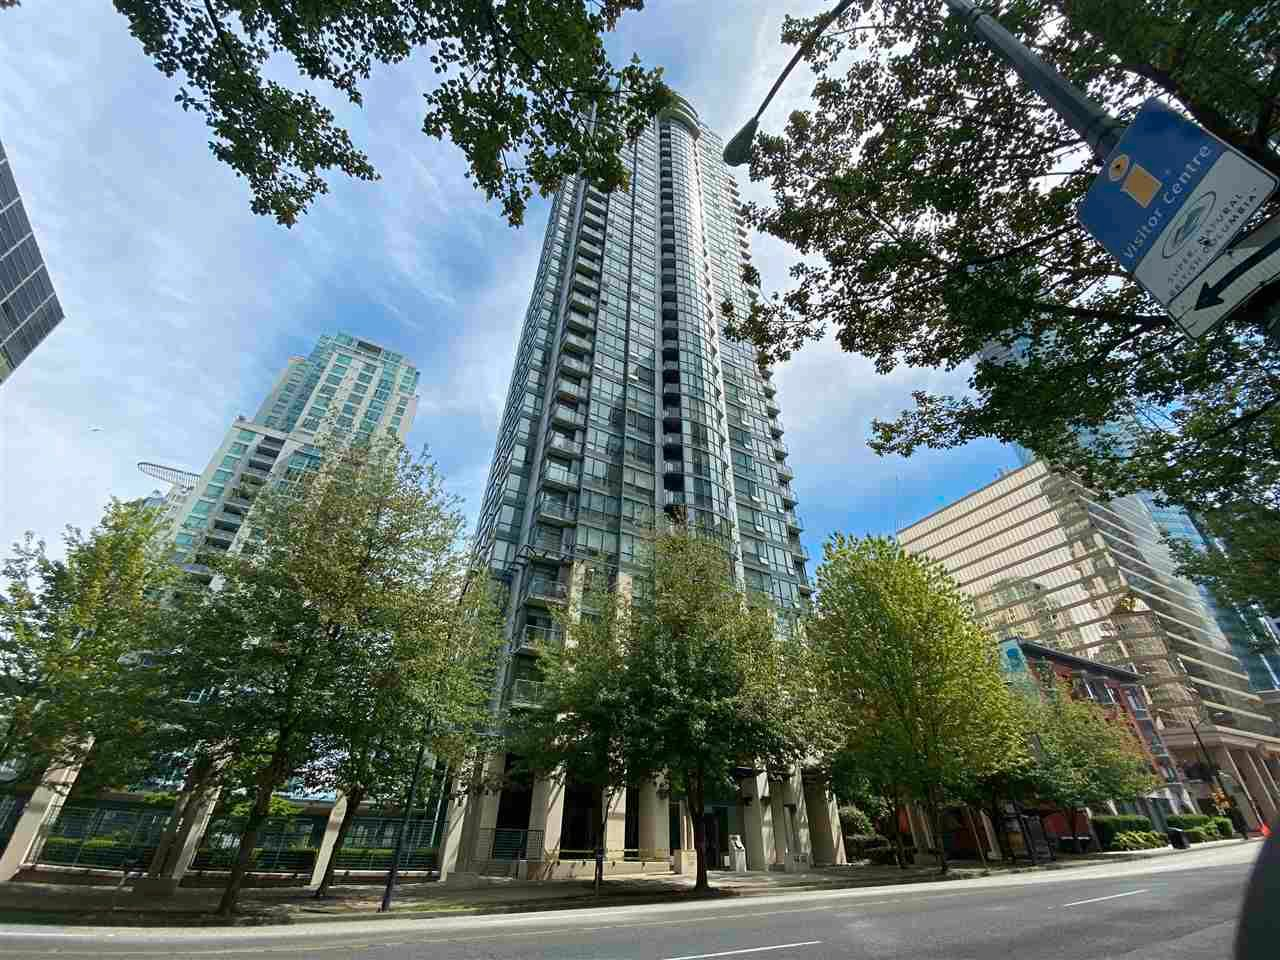 """Main Photo: 1201 1239 W GEORGIA Street in Vancouver: Coal Harbour Condo for sale in """"VENUS"""" (Vancouver West)  : MLS®# R2592499"""